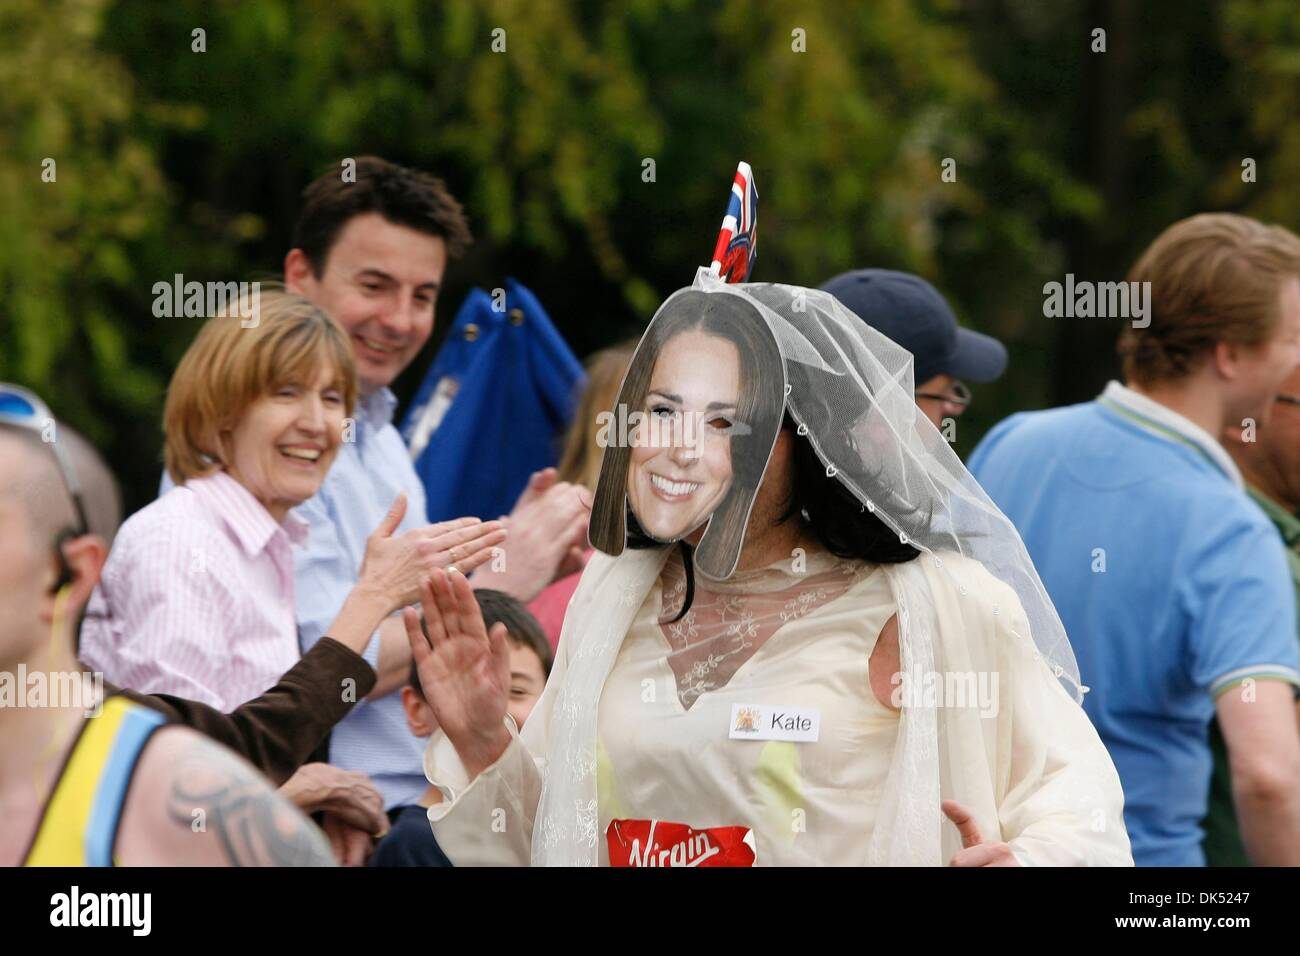 Apr 17, 2011 - London, England, United Kingdom - Runner dressed in wedding outfit with Kate Middleton mask during Stock Photo